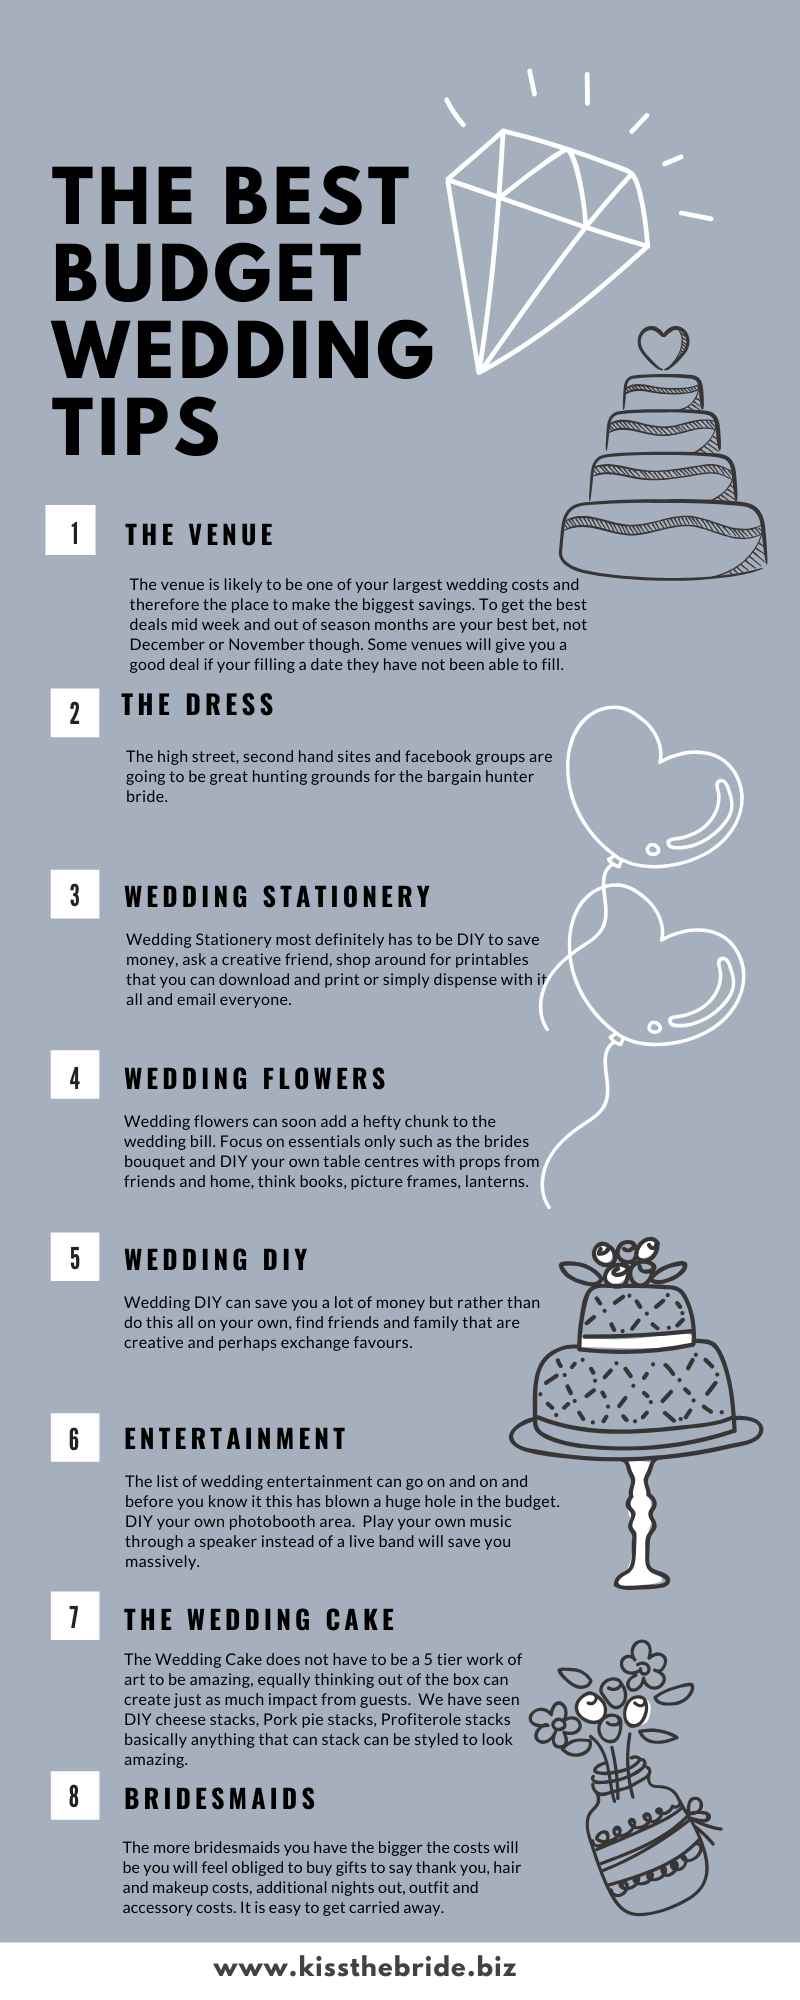 The best wedding budget tips